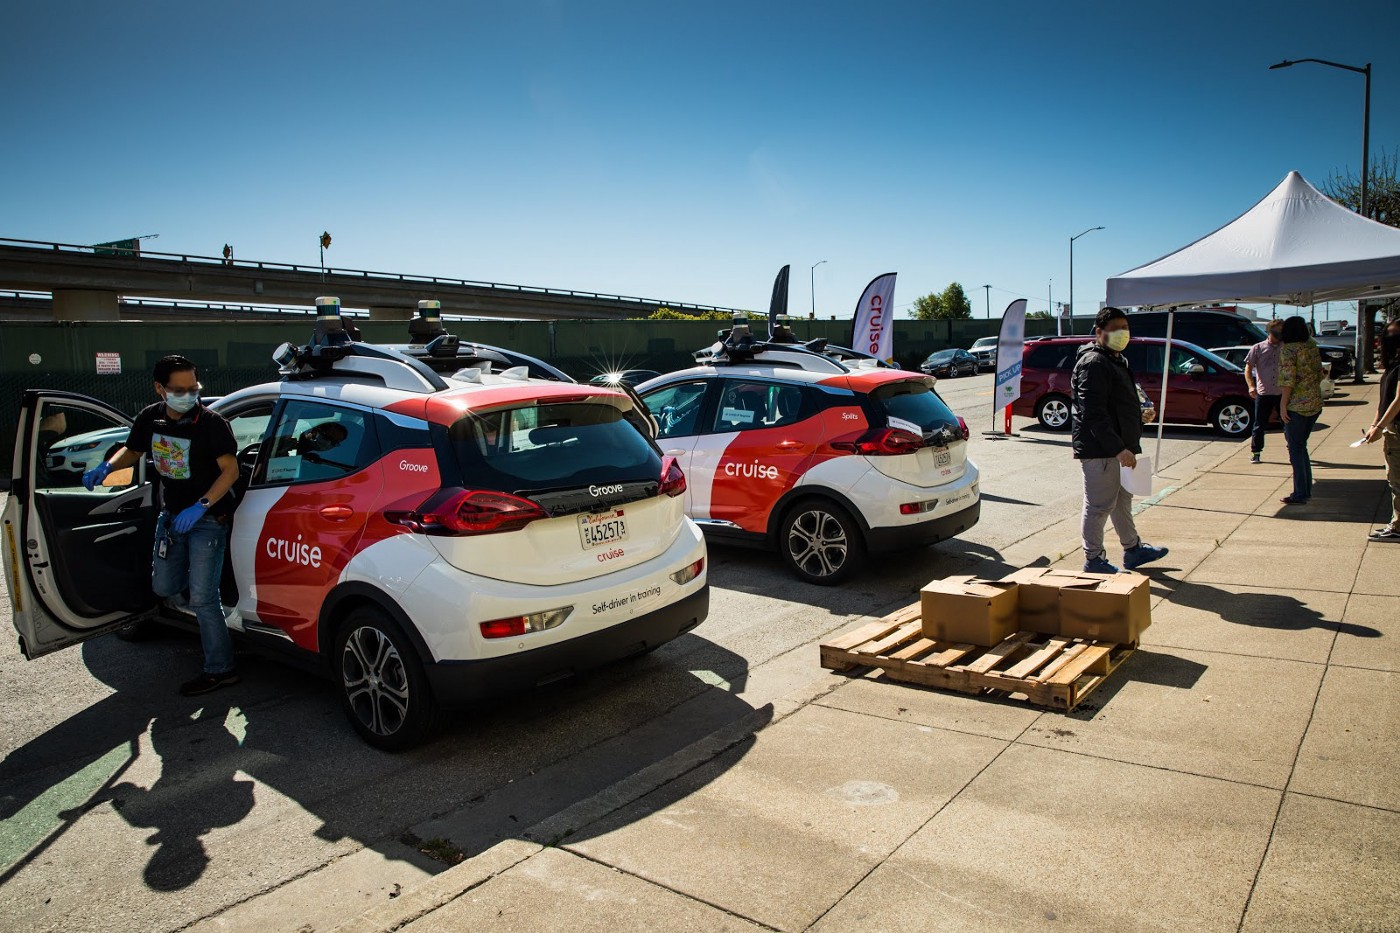 Cruise volunteers their all-electric, self-driving fleet to deliver meals and groceries in San Francisco.